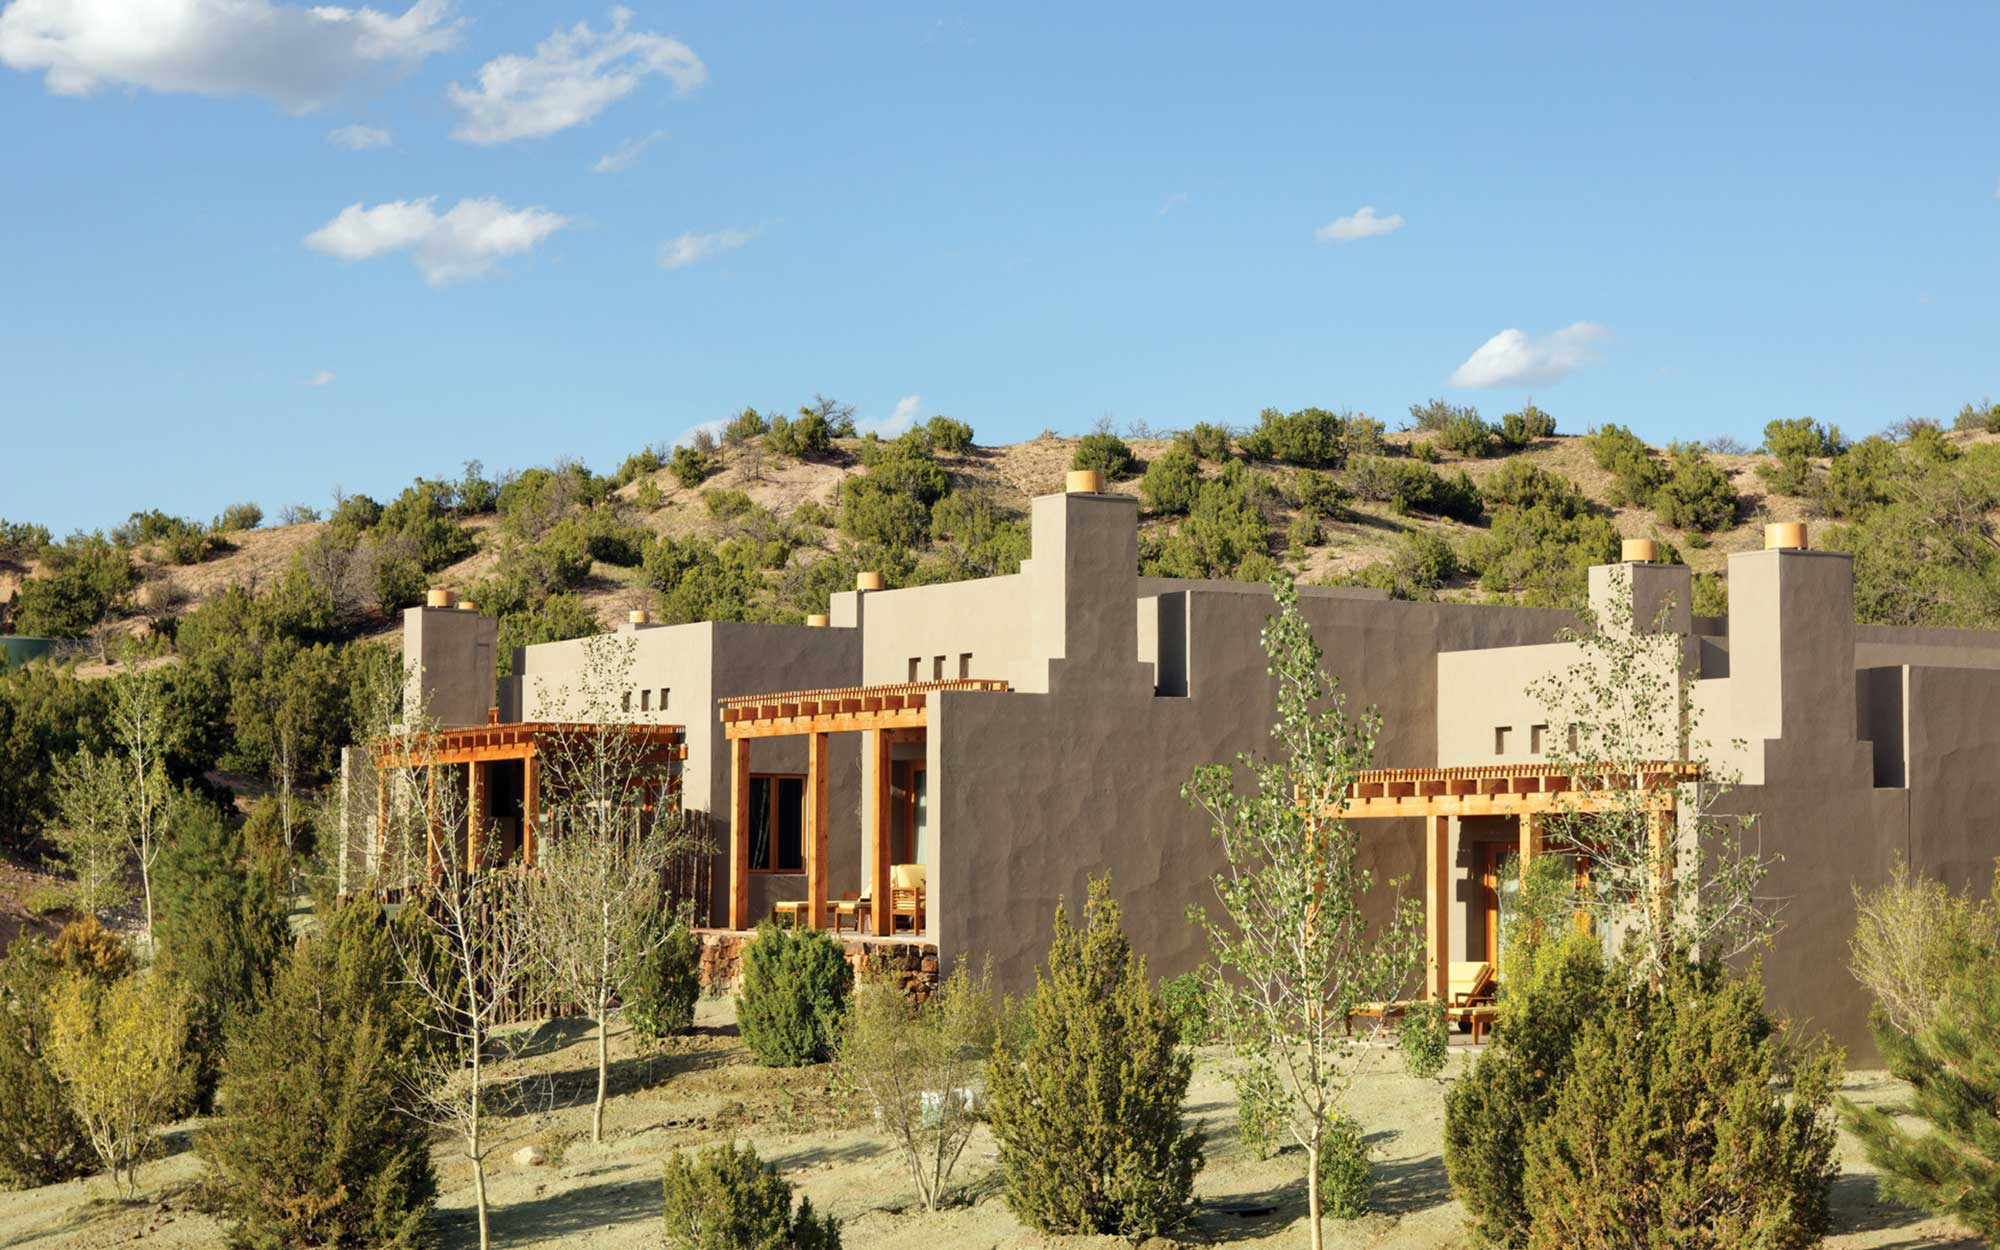 Best Romantic Summer Getaways: Santa Fe